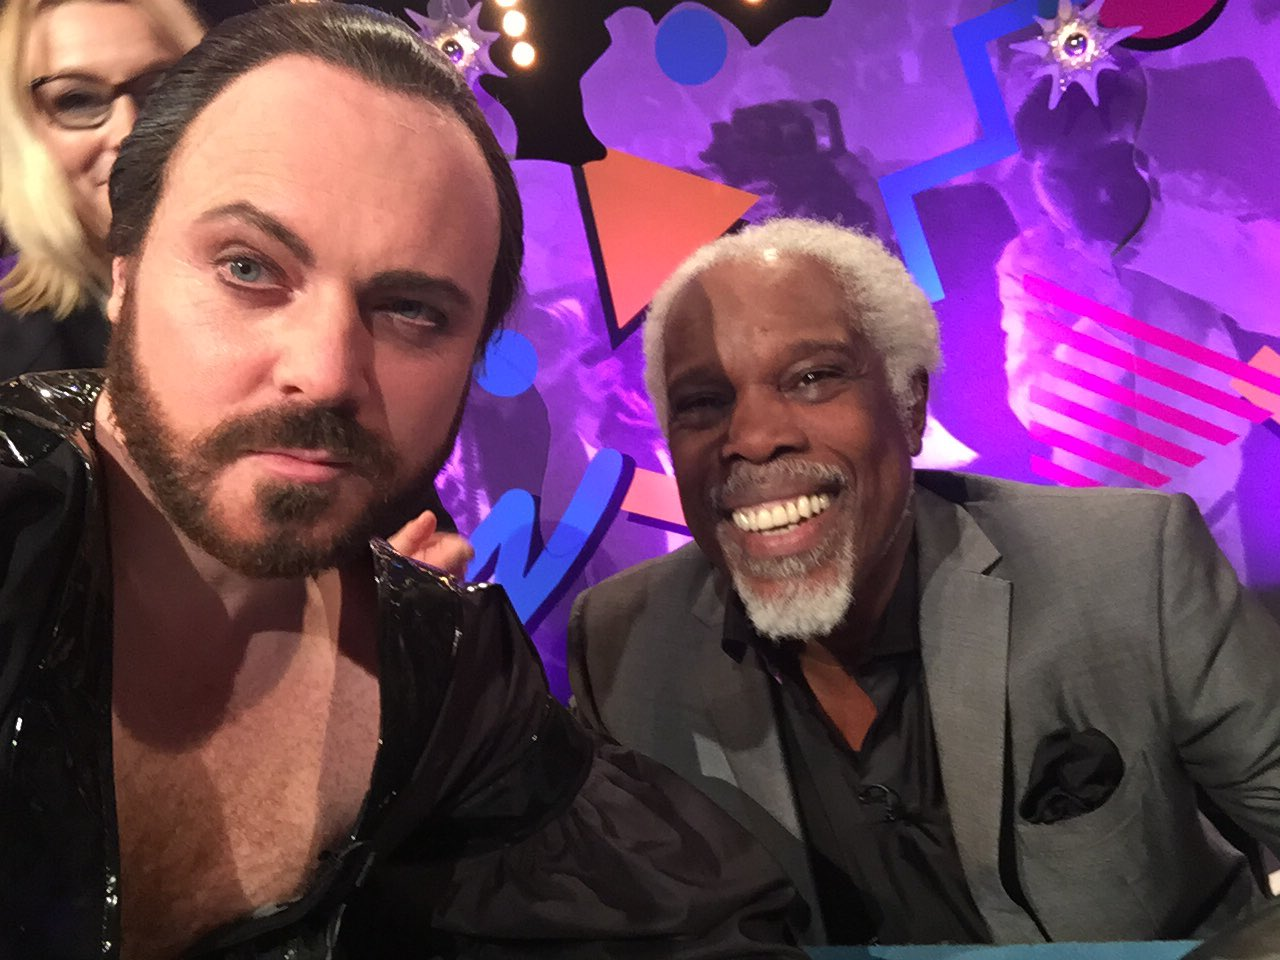 General zod and me dad https://t.co/tvV7qmYpLV